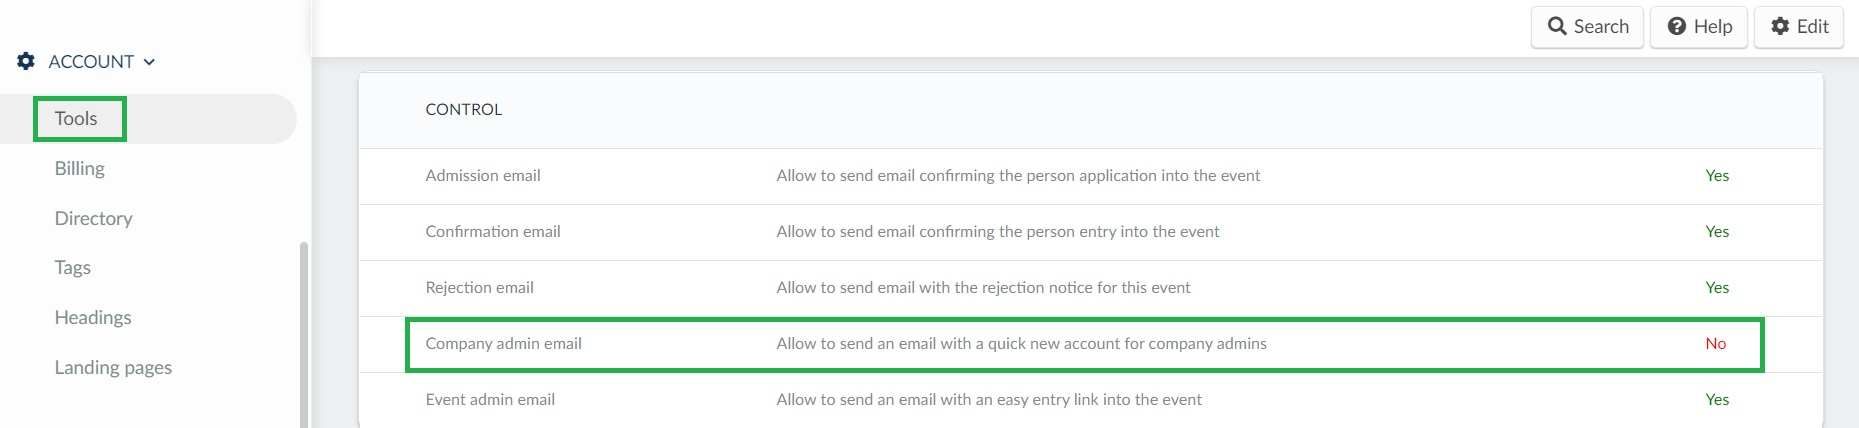 How to disable emails for company admins